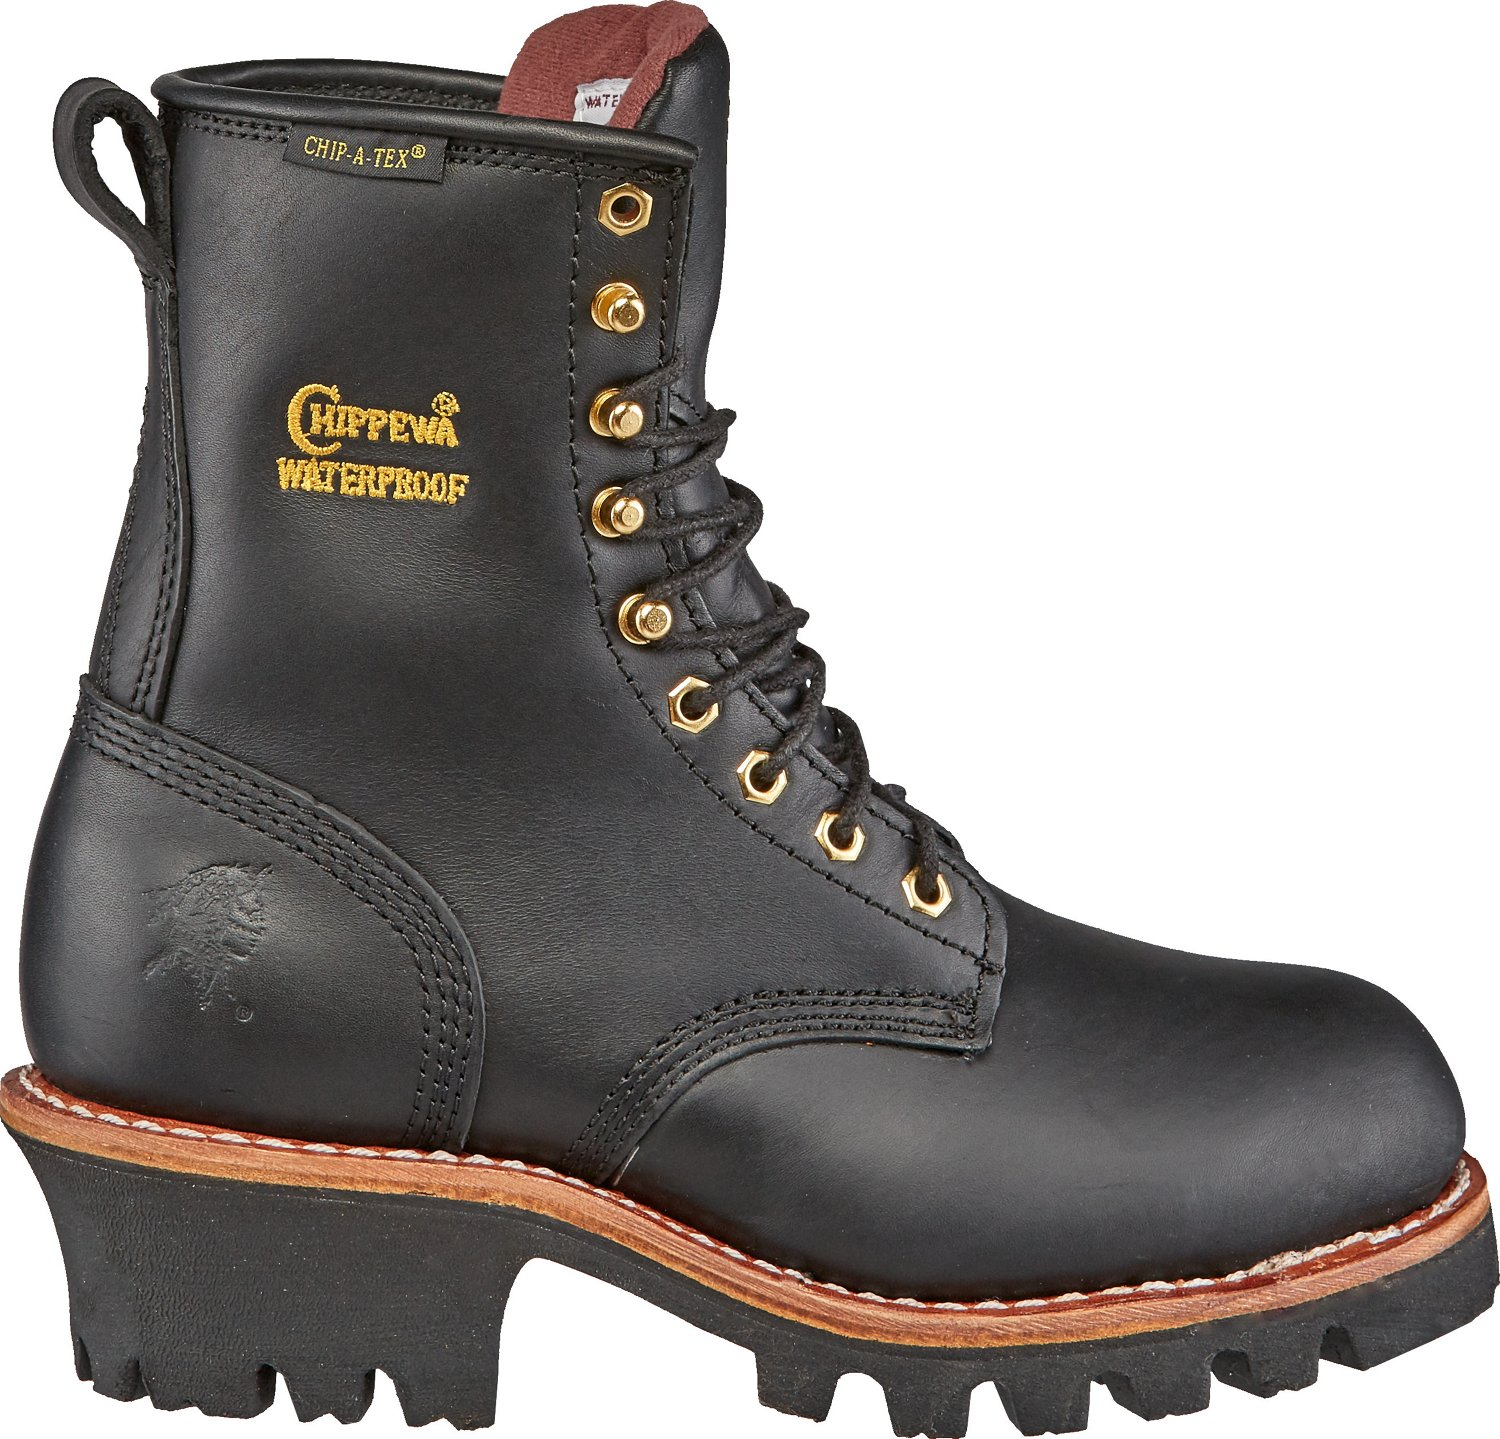 Chippewa Boots® Women's Oiled Steel-Toe Logger Boots | Academy